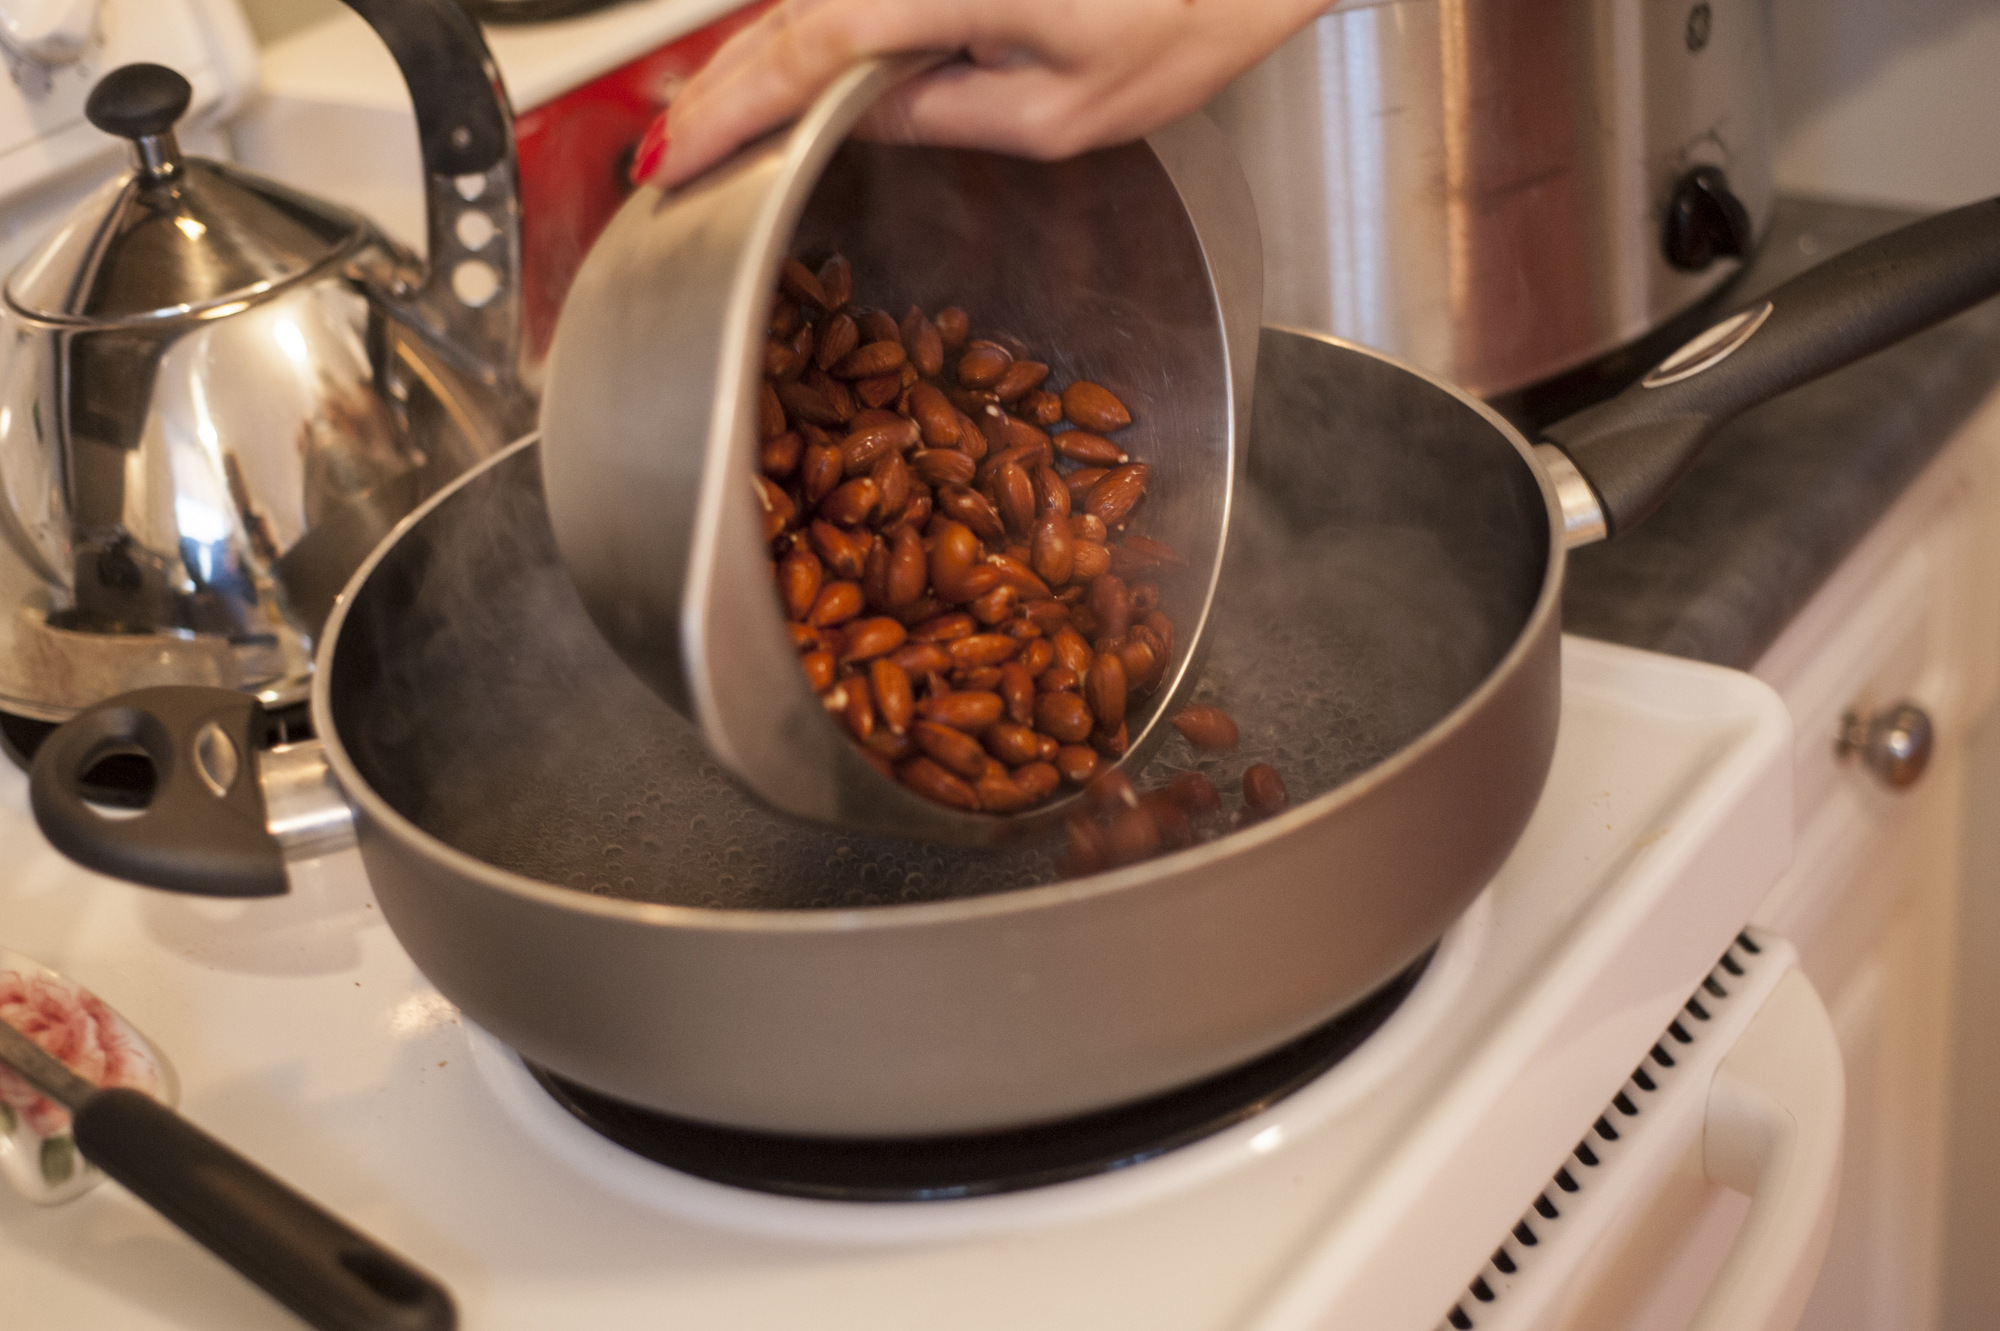 Blanch the almonds in boiling water for 60 seconds.